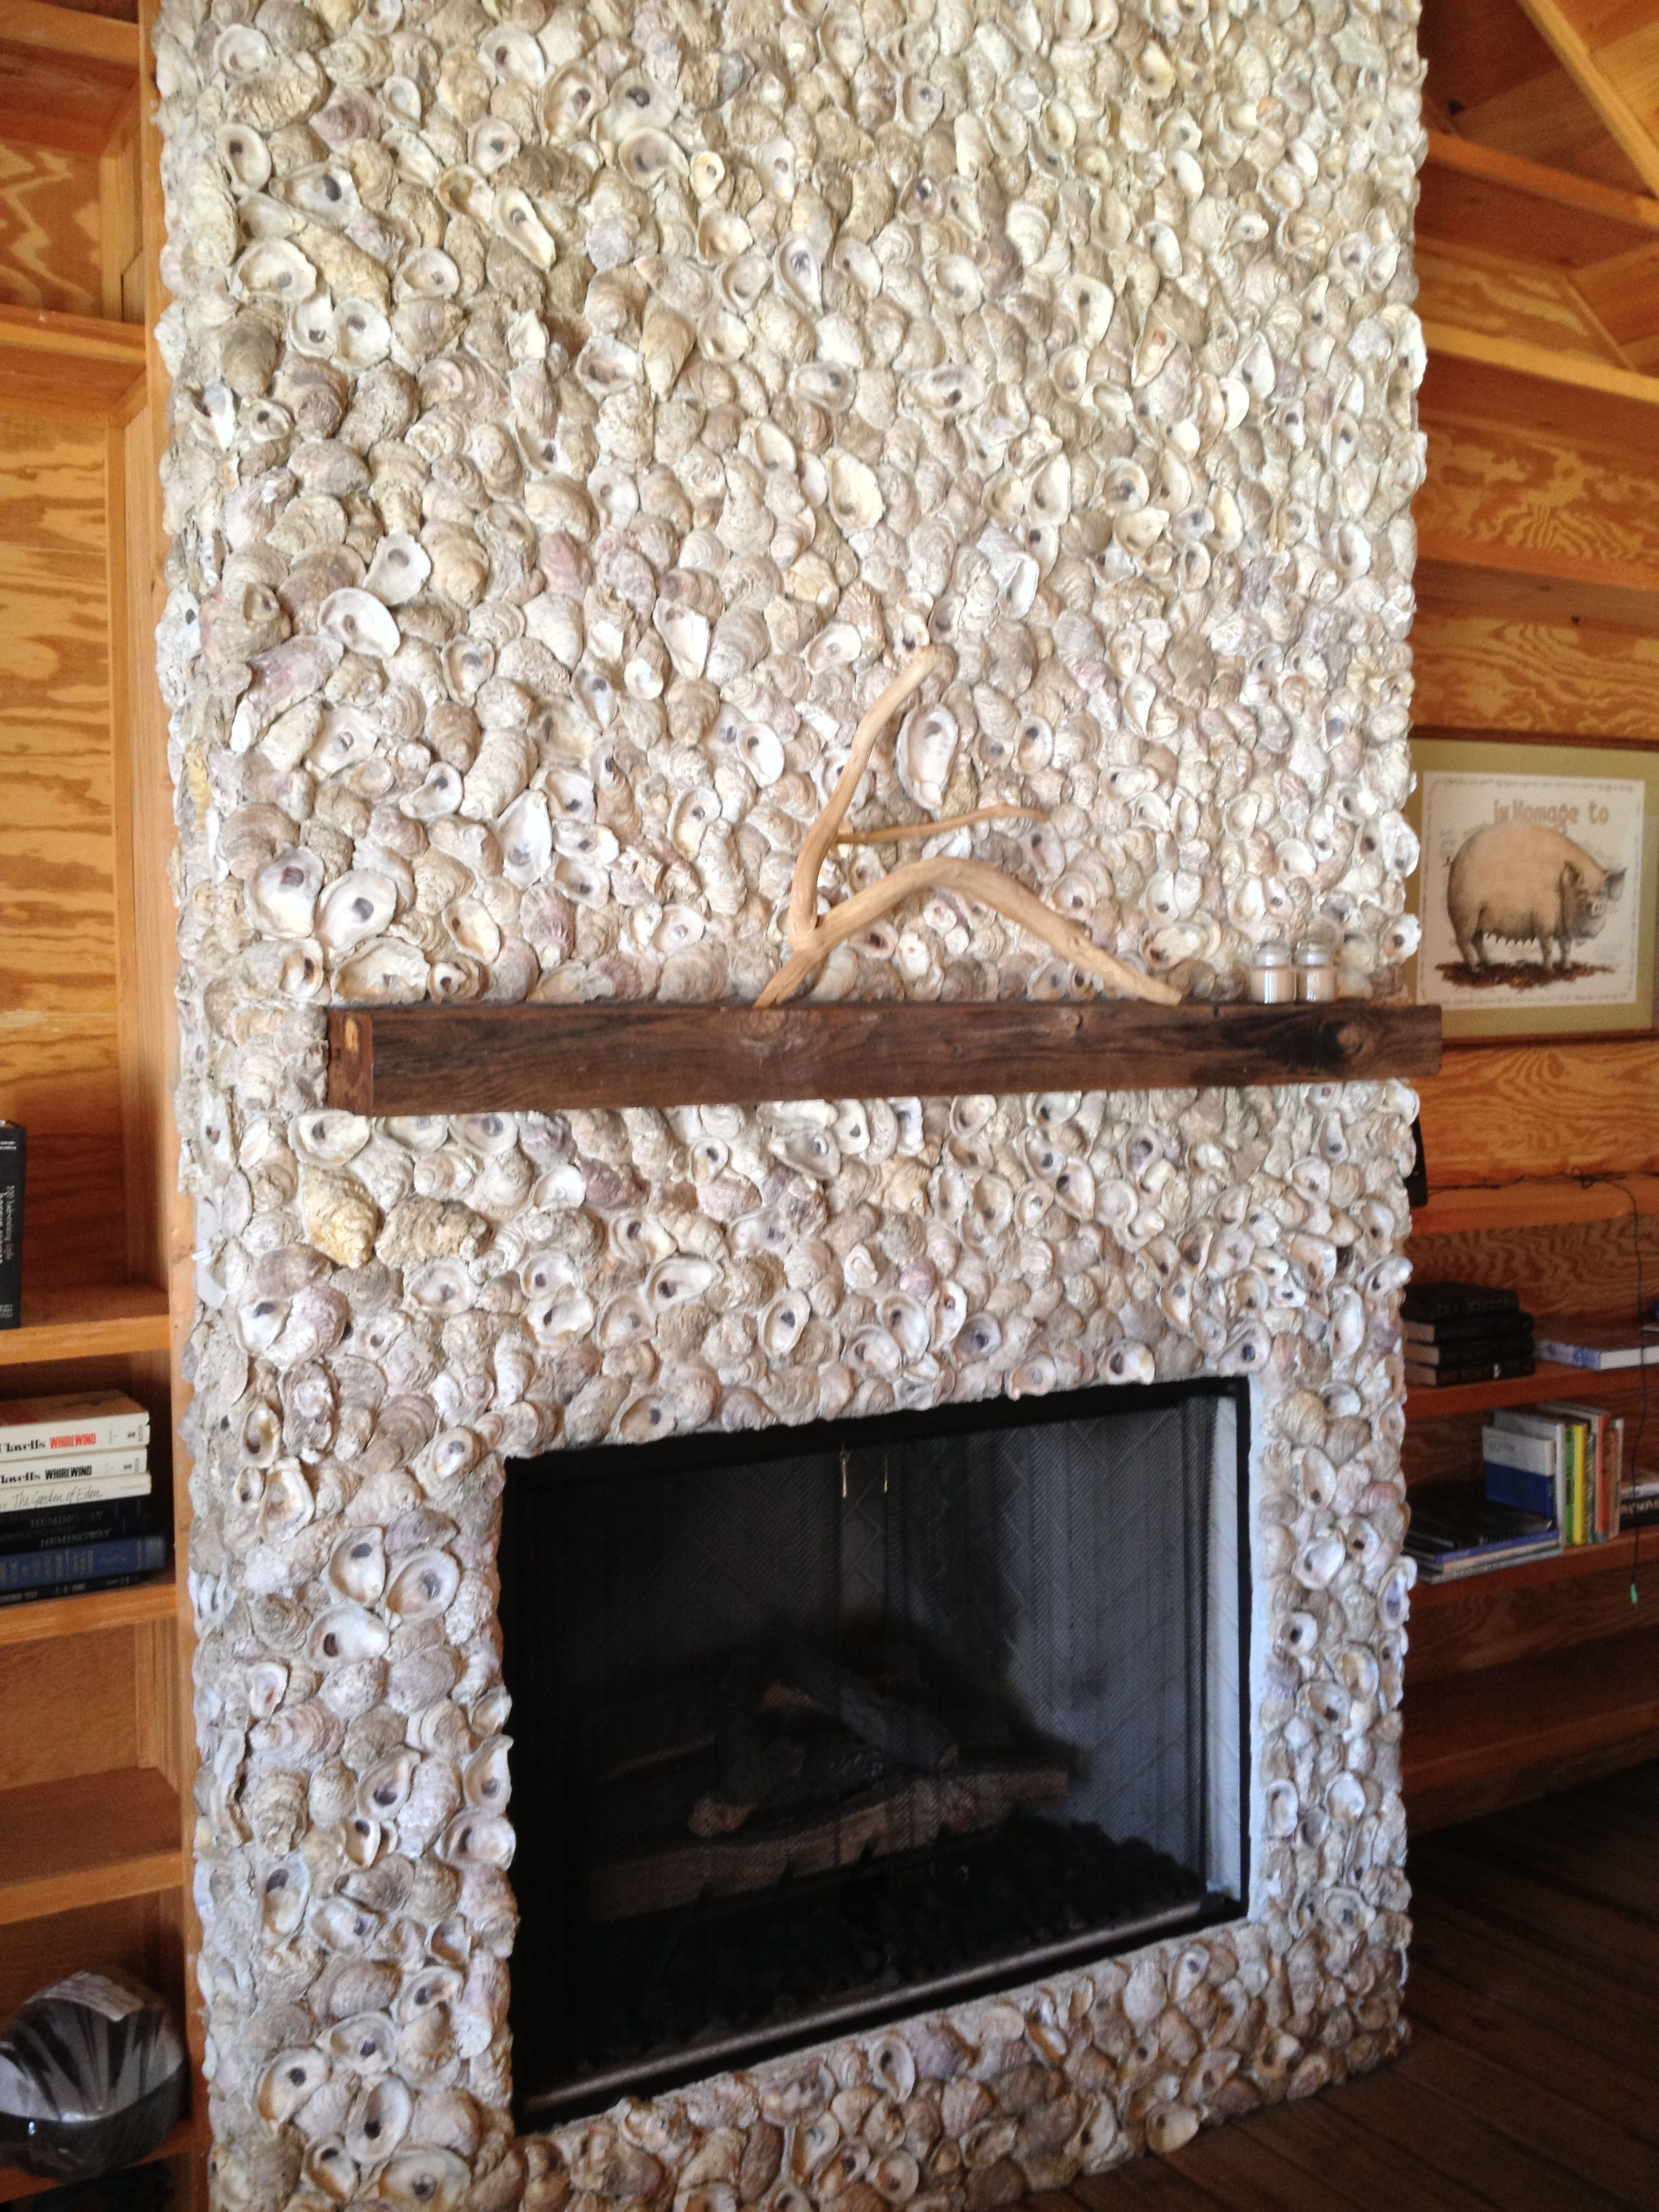 Fireplace Wall Made With Oyster Shells Oyster Shell Crafts